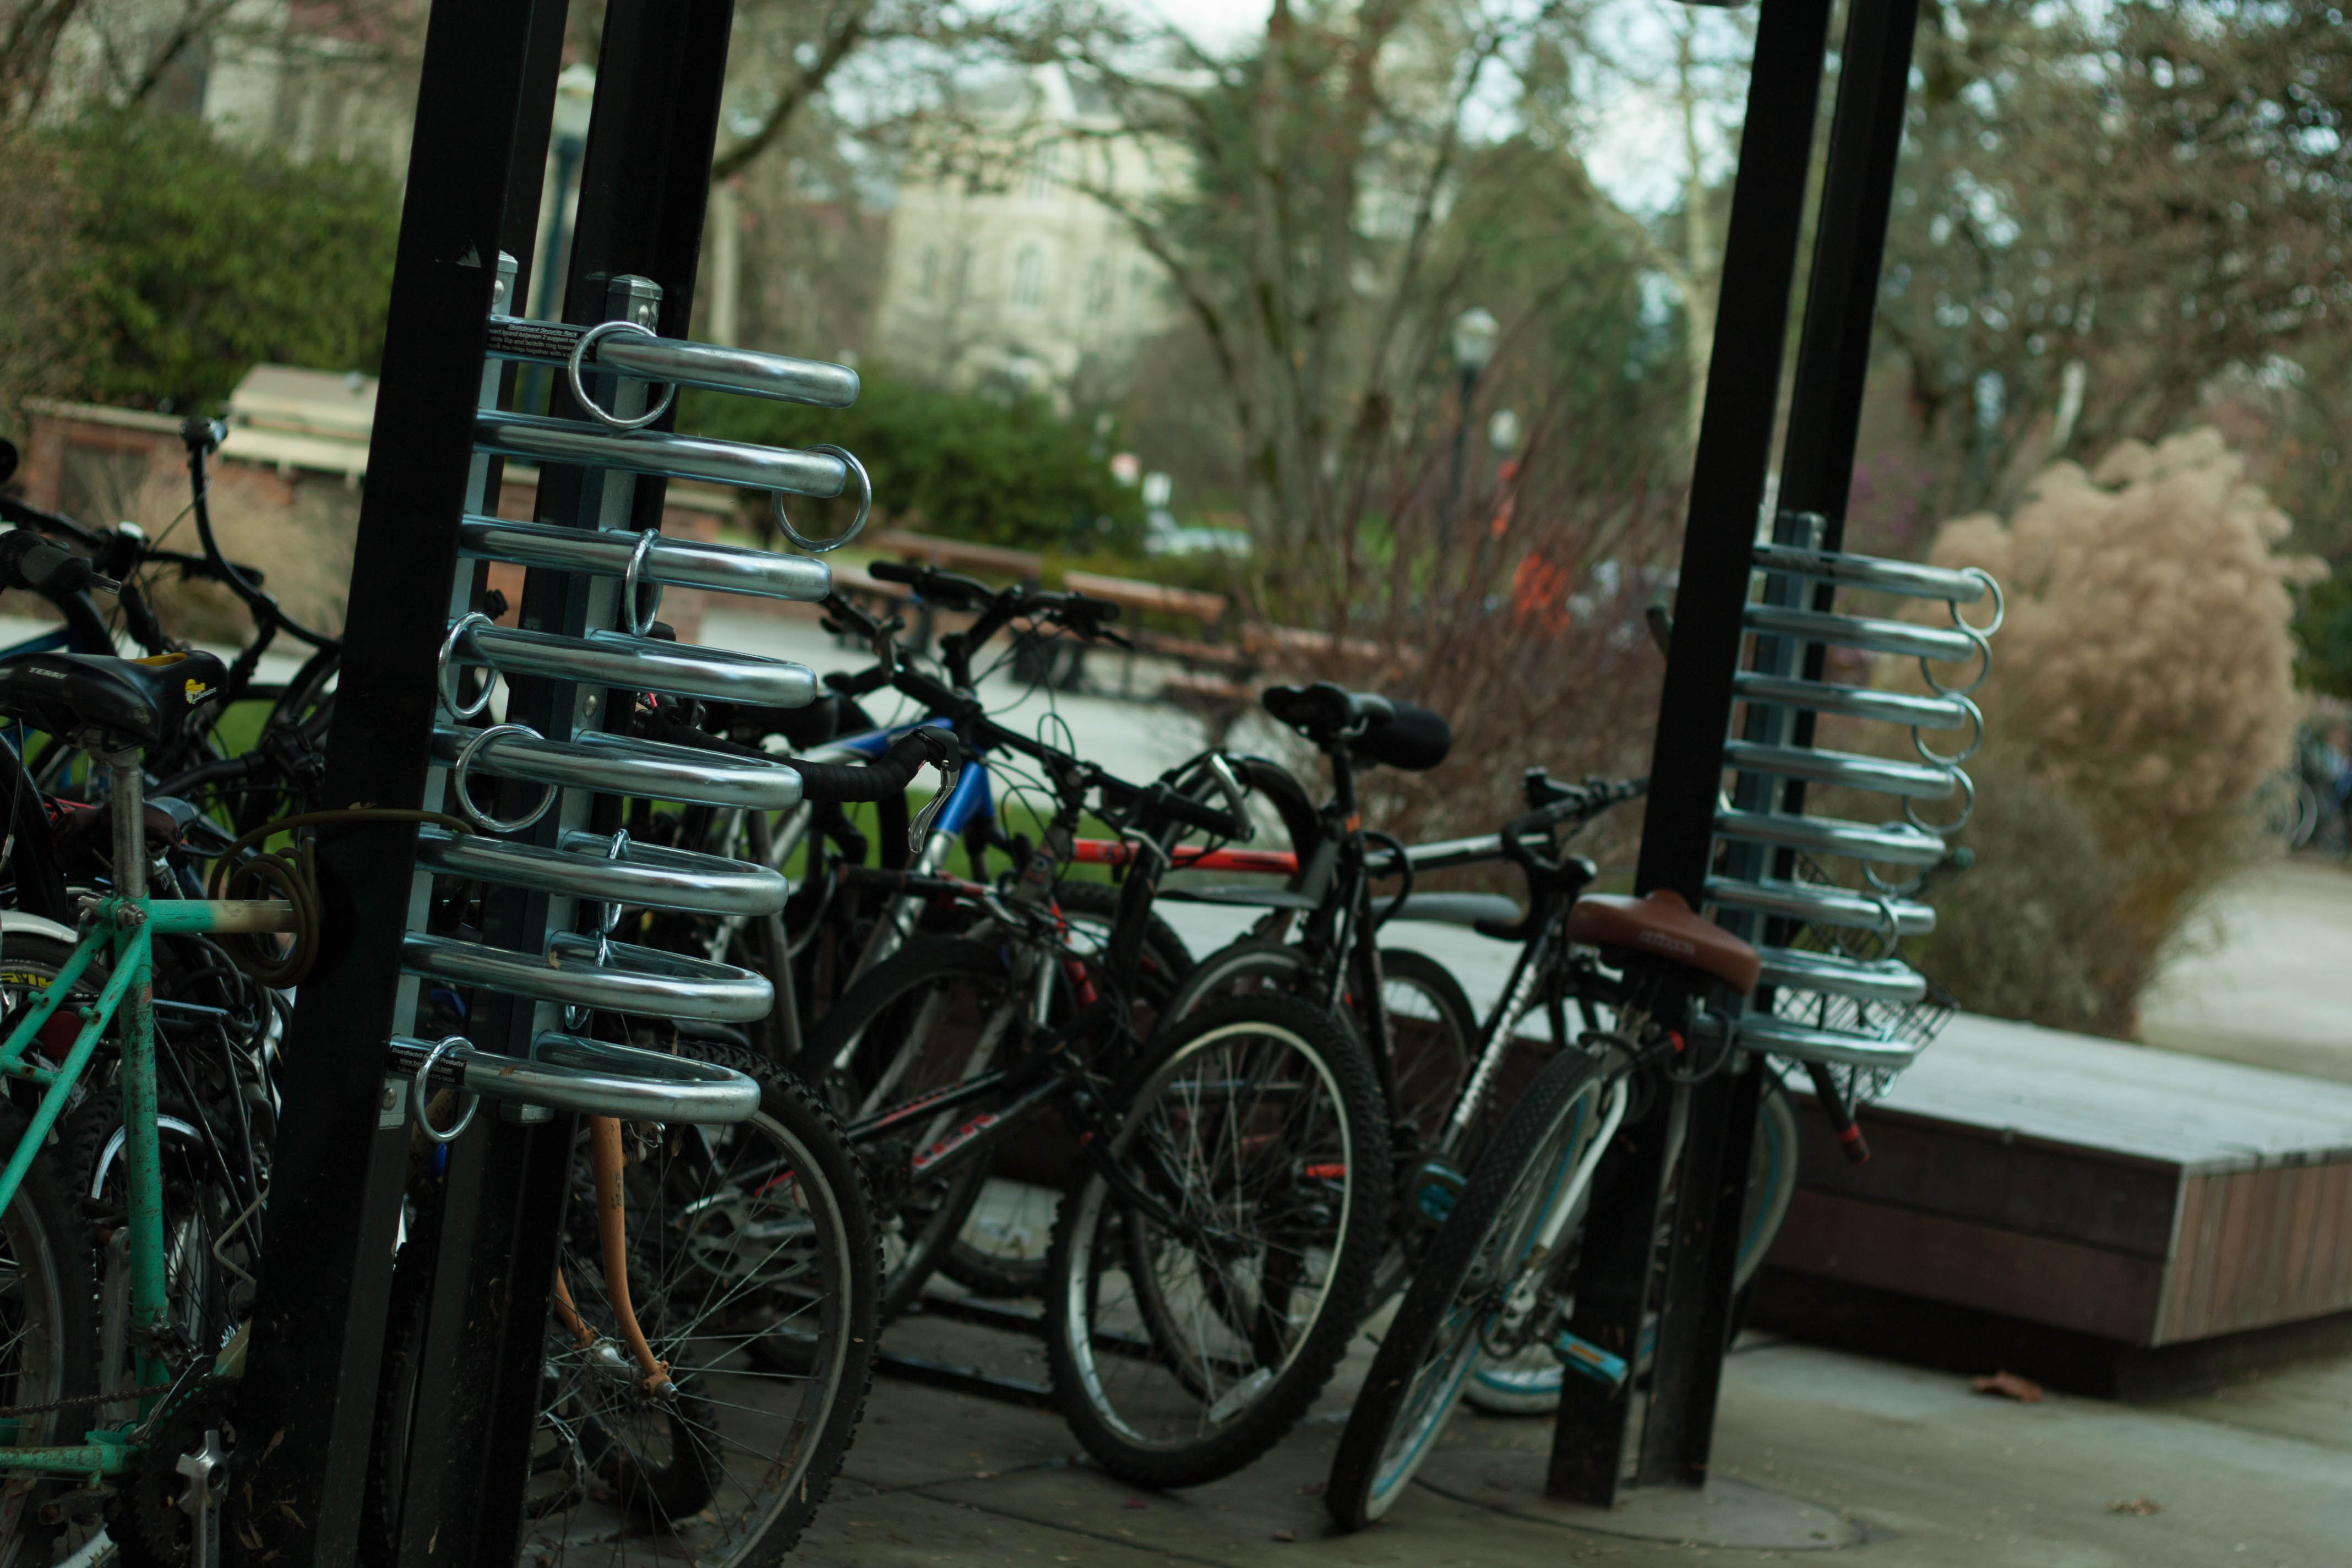 McNary Hall Skateboard Racks